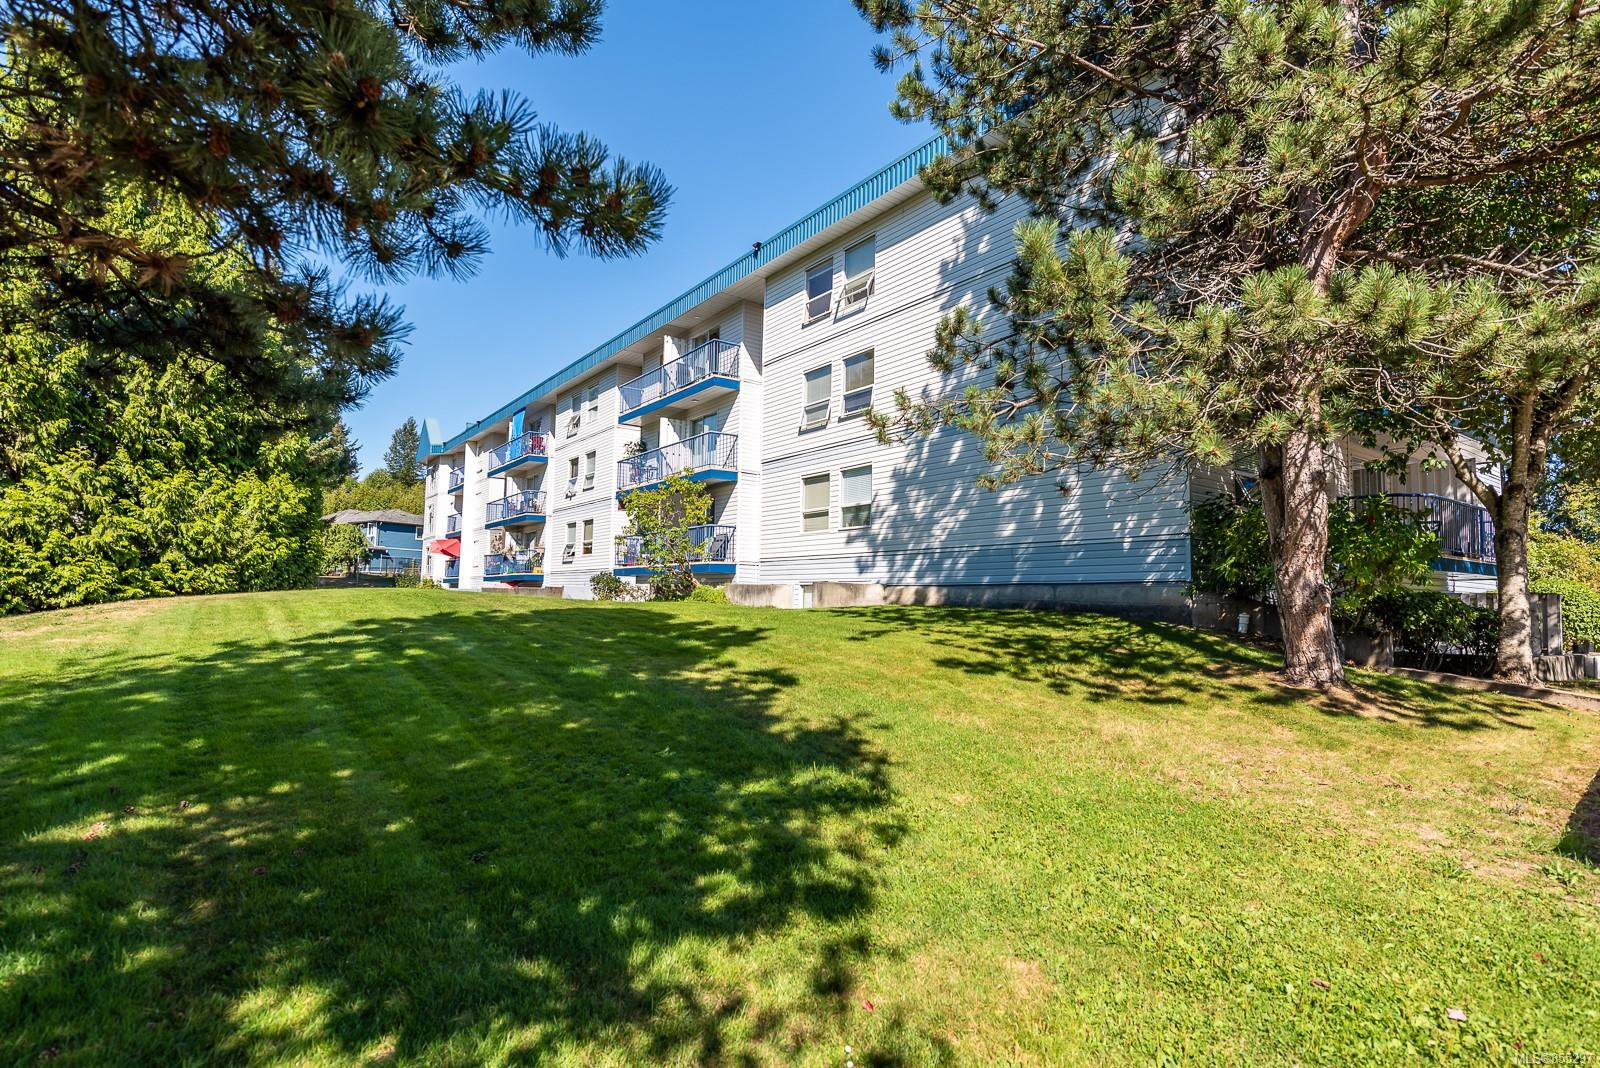 Main Photo: 205 200 Back Rd in : CV Courtenay East Condo for sale (Comox Valley)  : MLS®# 855297